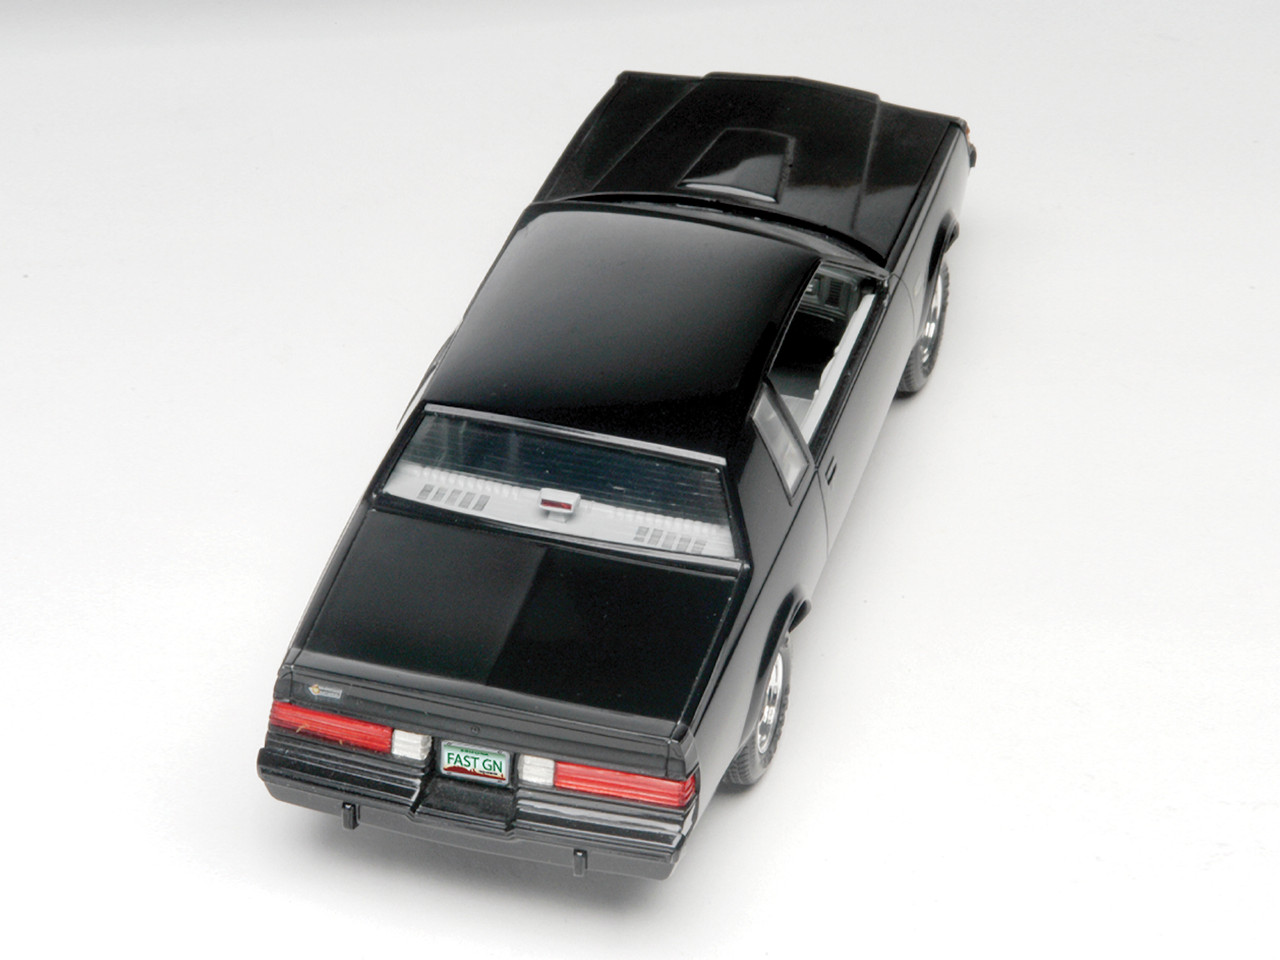 Revell 854495 1/24 Buick Grand National 2n1 Model Kit